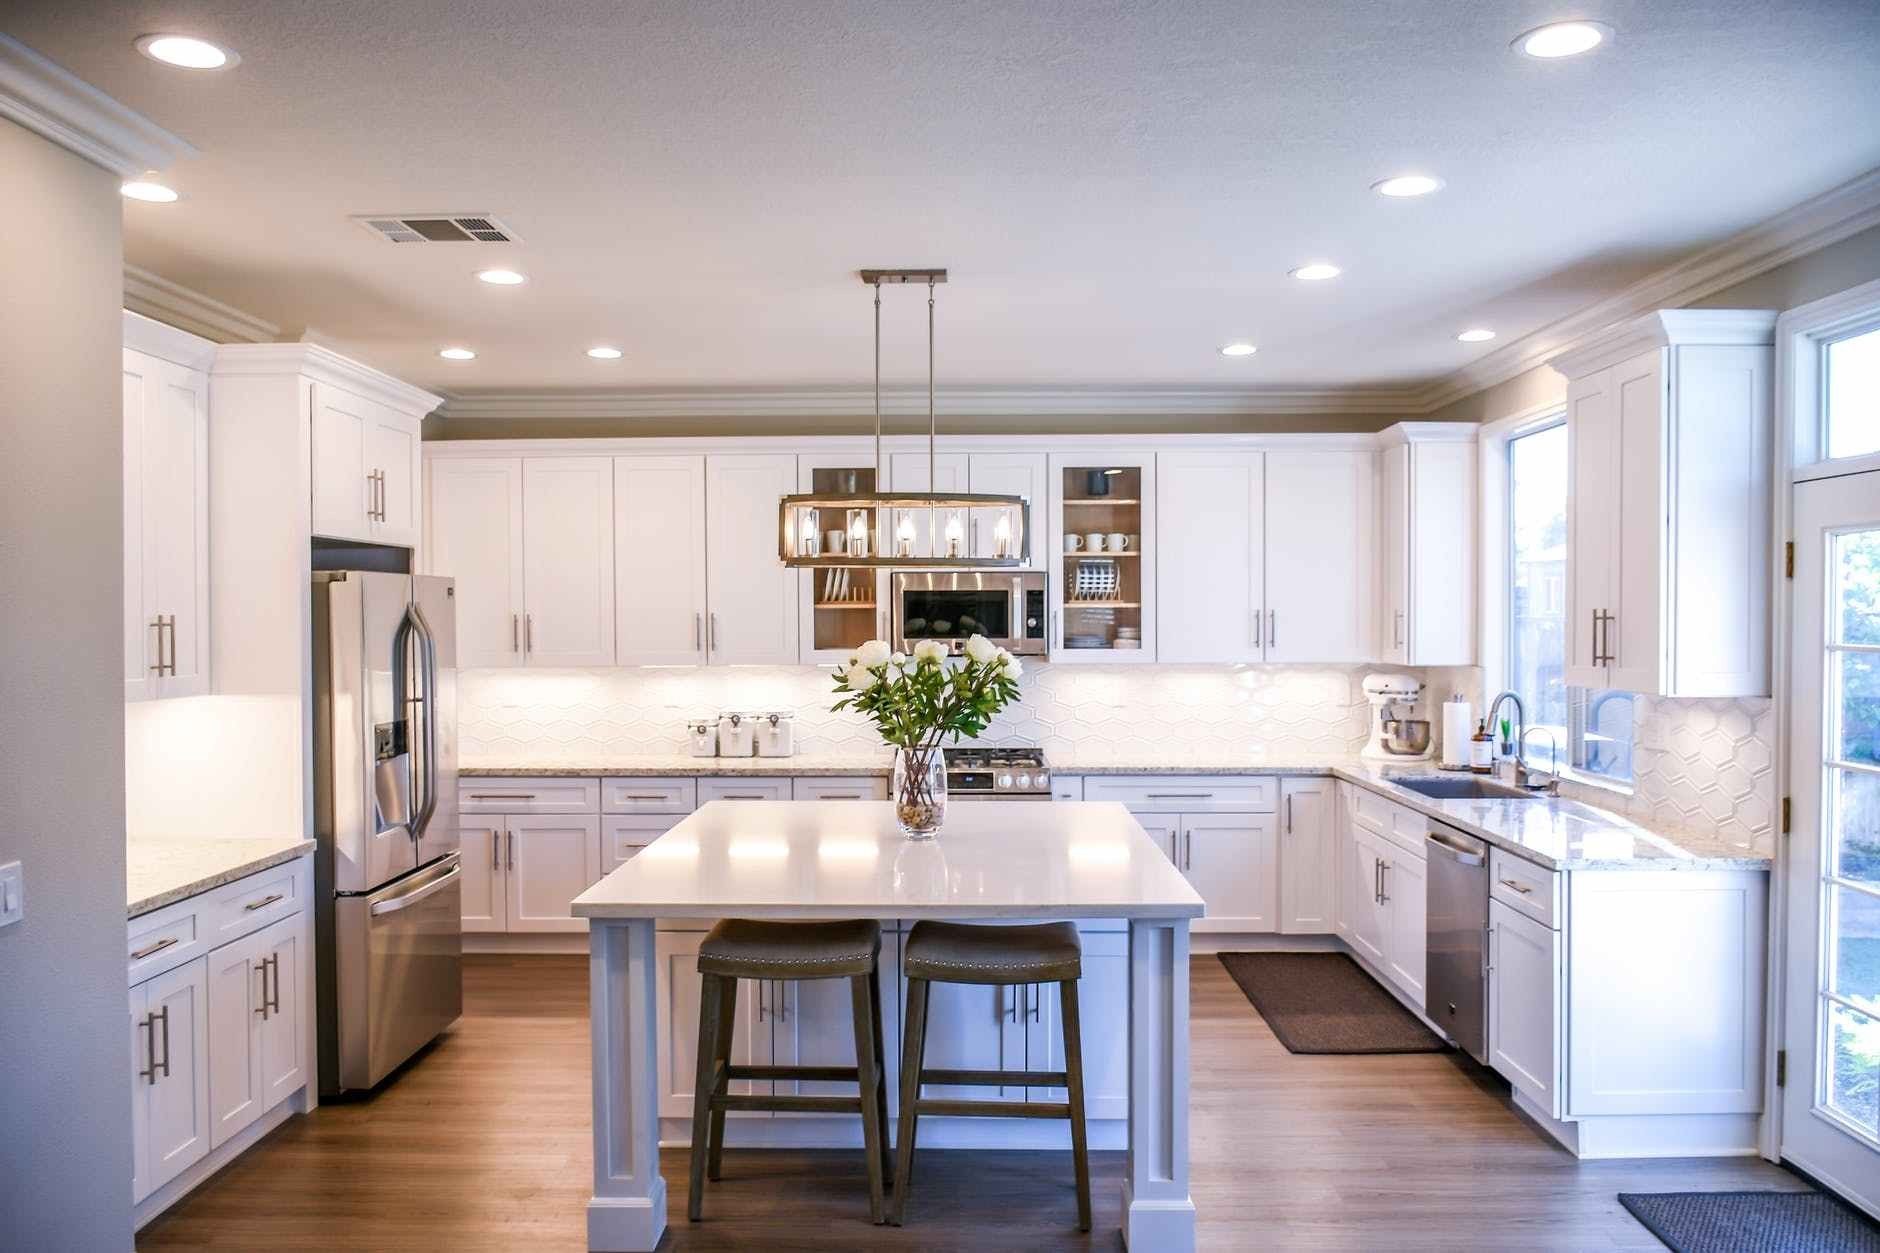 Things to Consider While Choosing a Reliable Home Painting and Cabinet Restoration Company